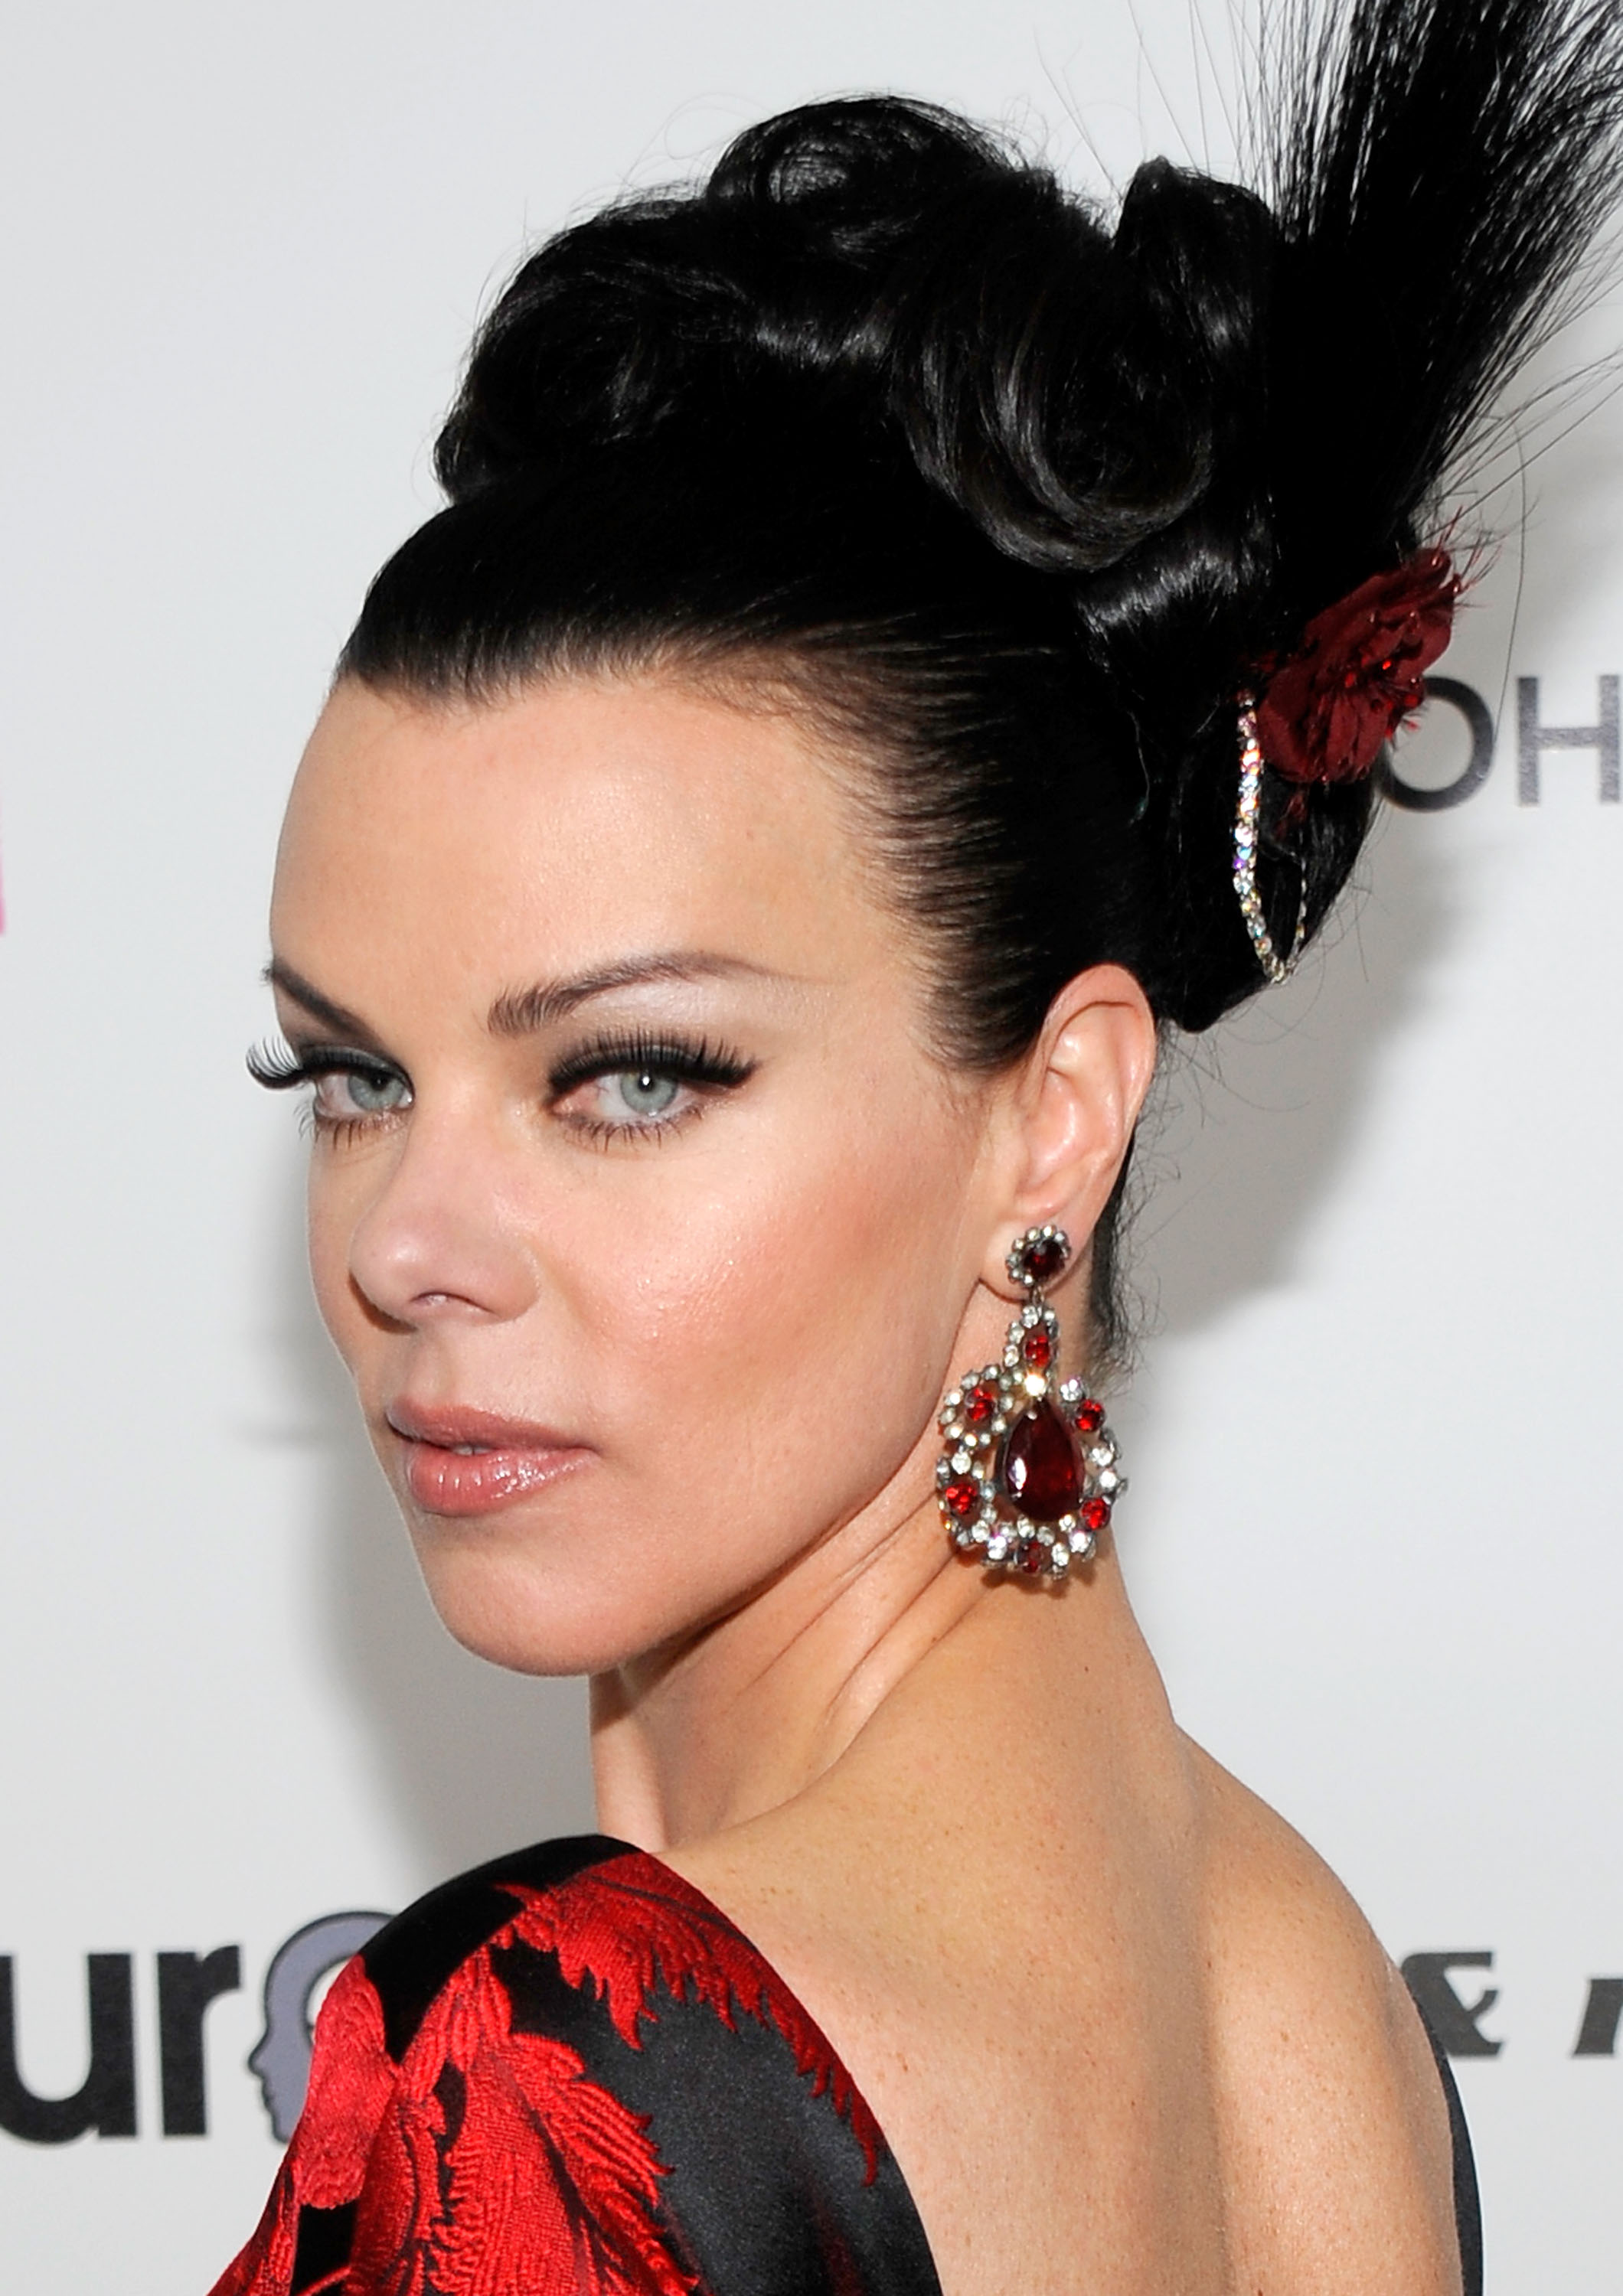 Watch Debi Mazar video